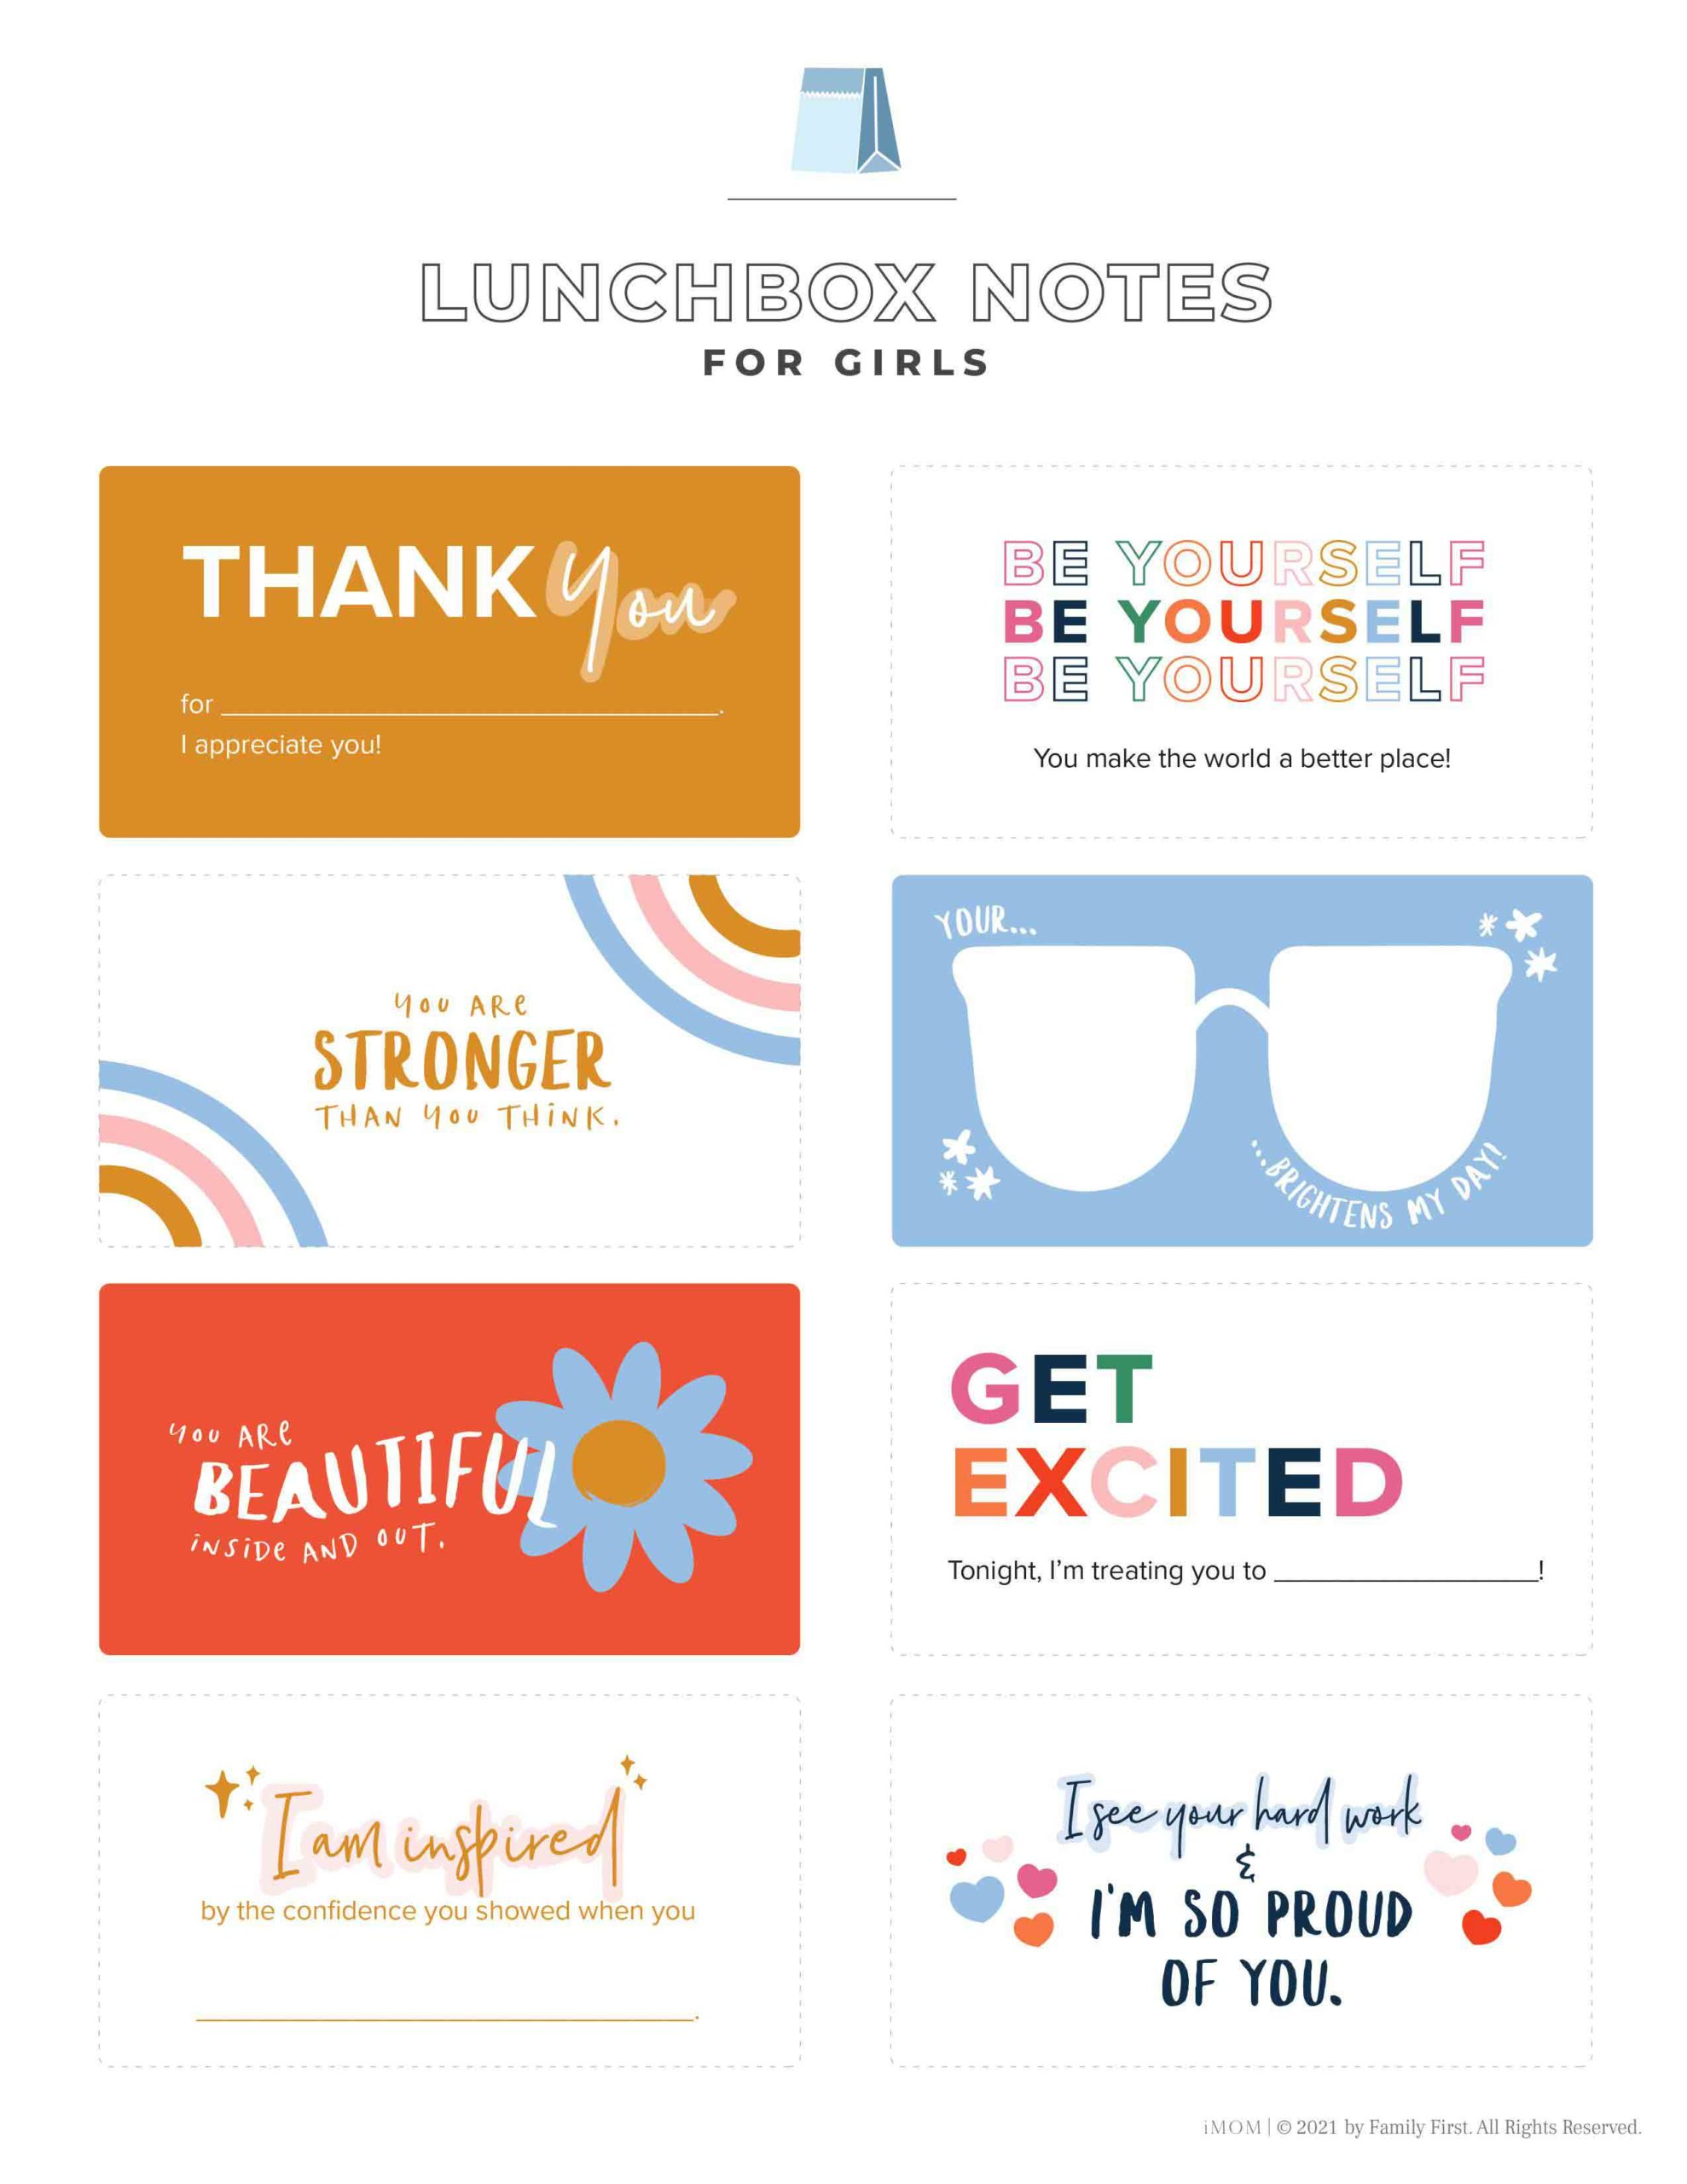 lunchbox notes for girls